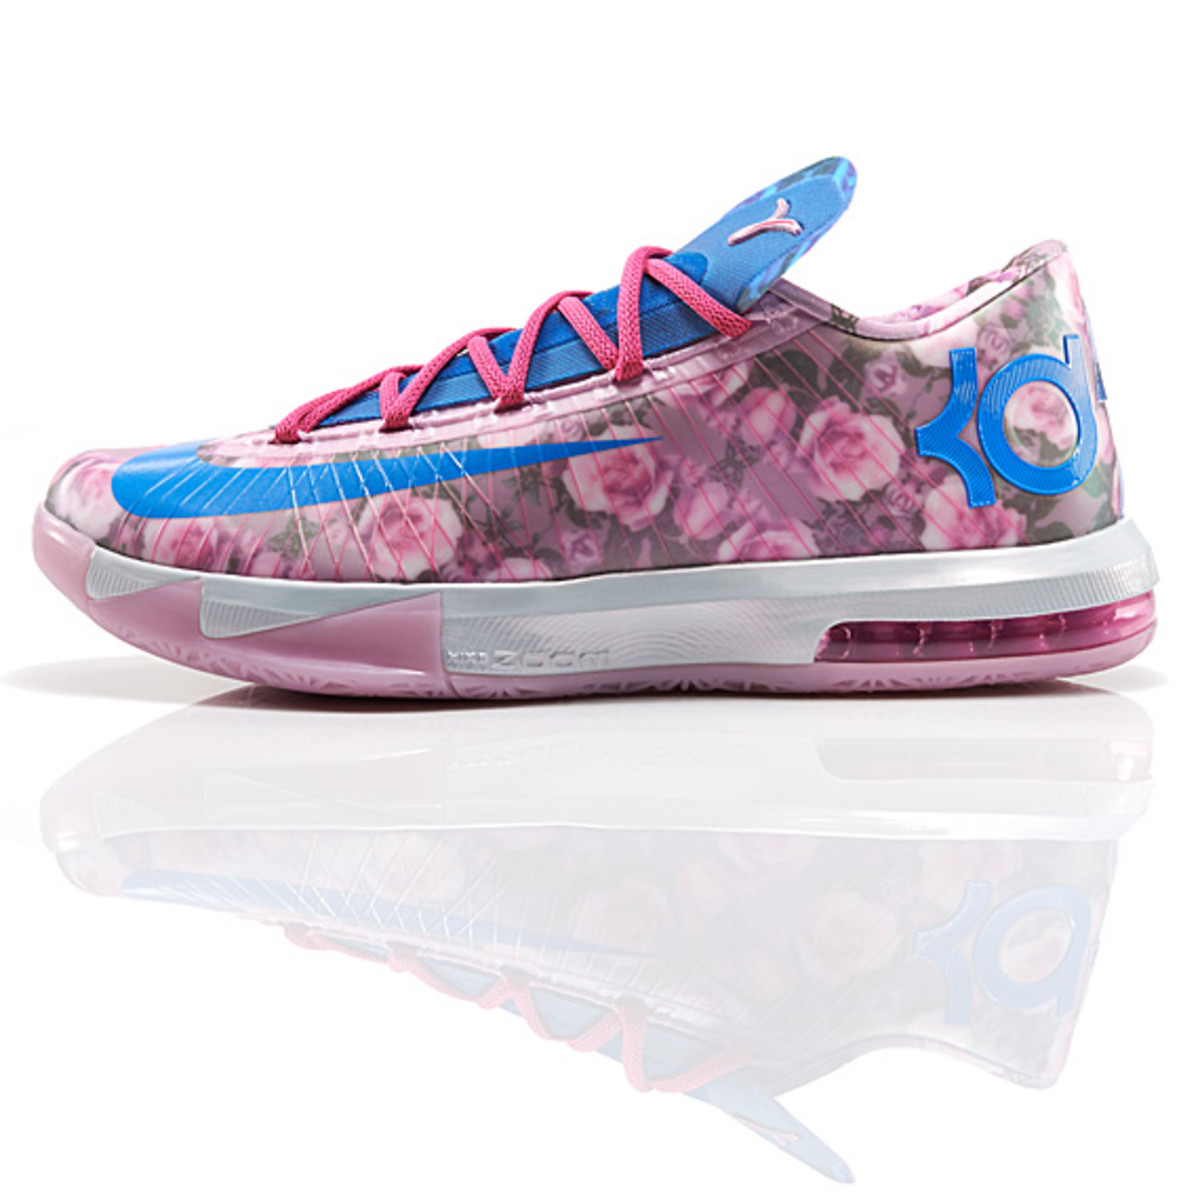 nike-kd-6-aunt-pearl-collection-officially-unveiled05